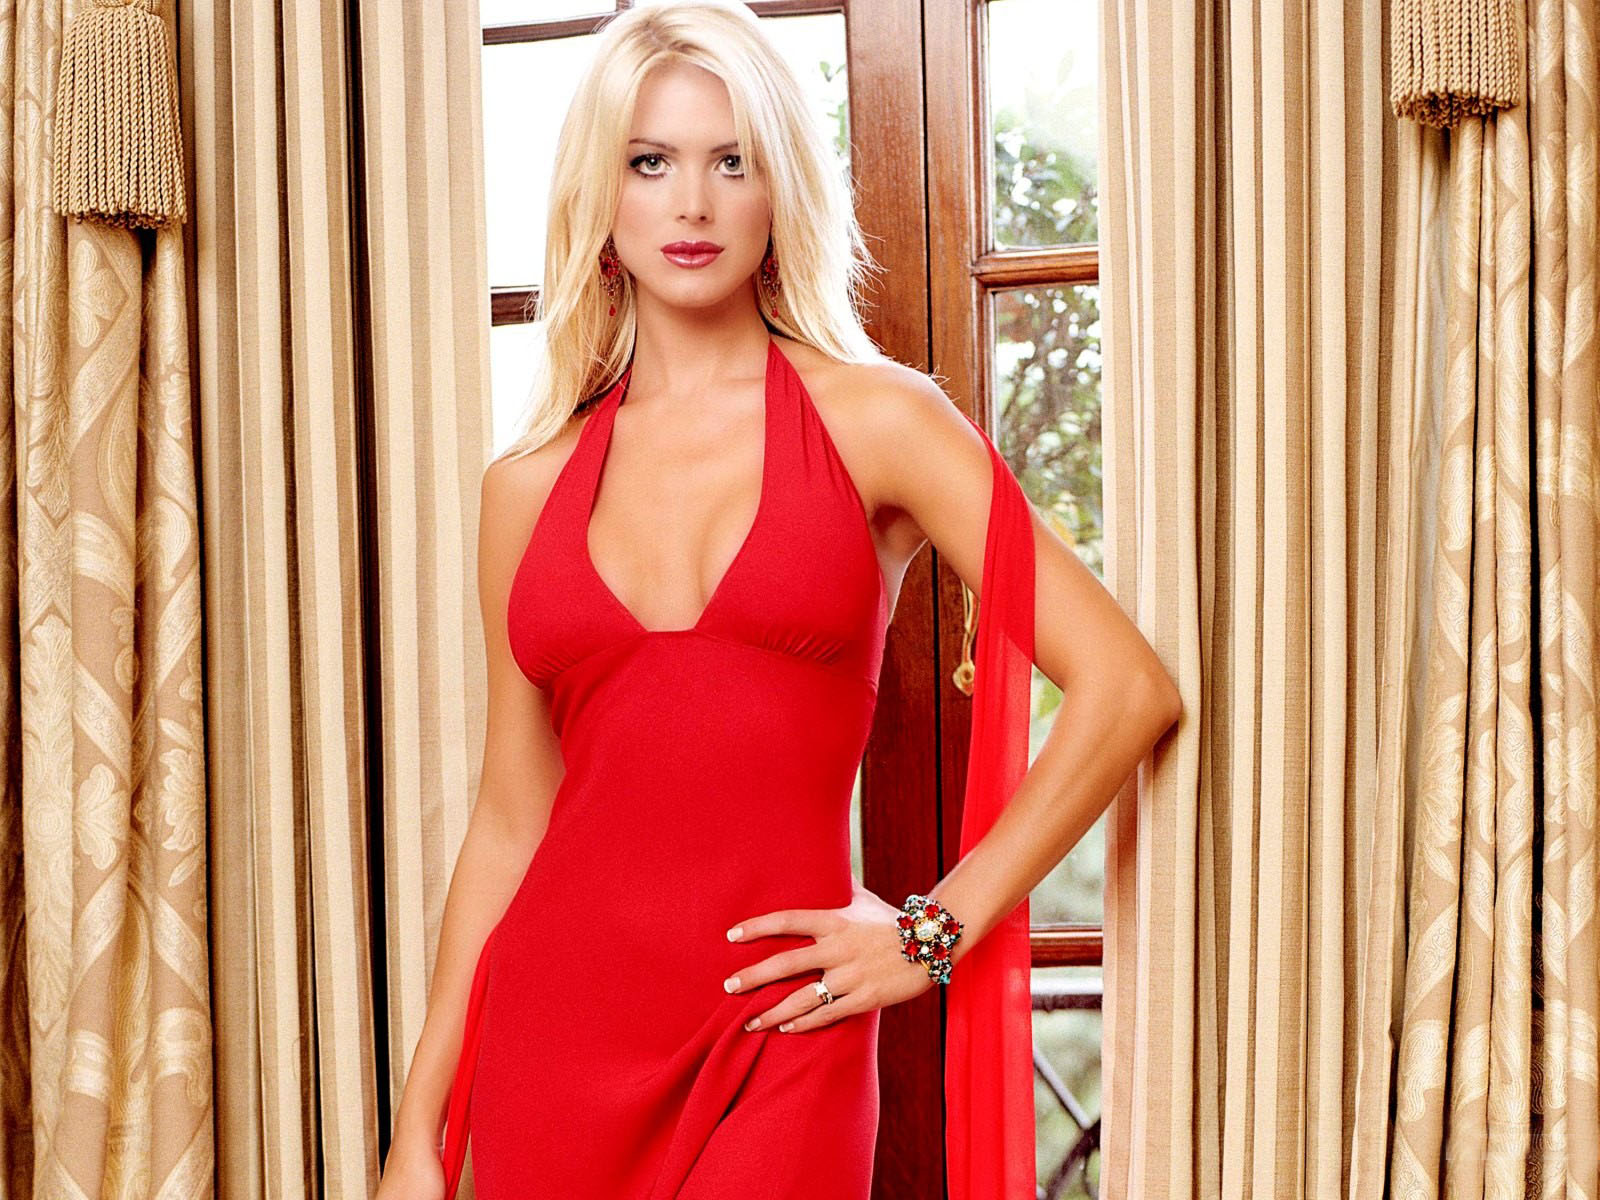 Victoria Silvstedt images Victoria Silvstedt